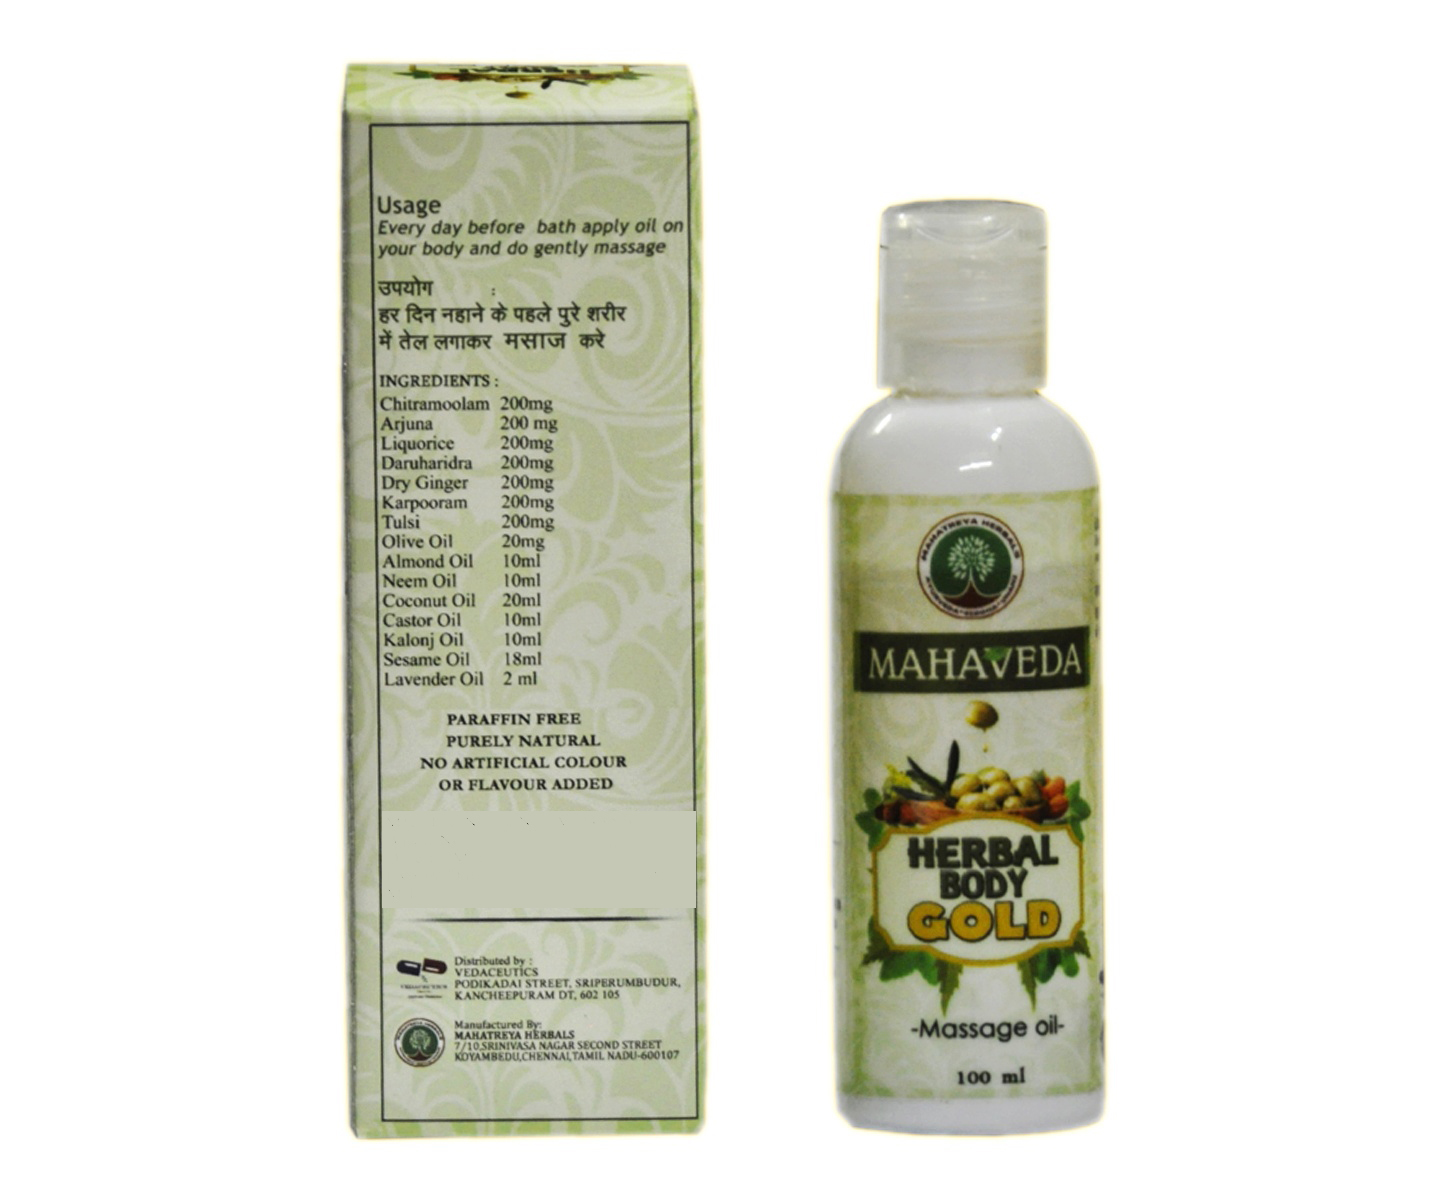 MAHAVEDA HERBAL BODY GOLD MASSAGE OIL